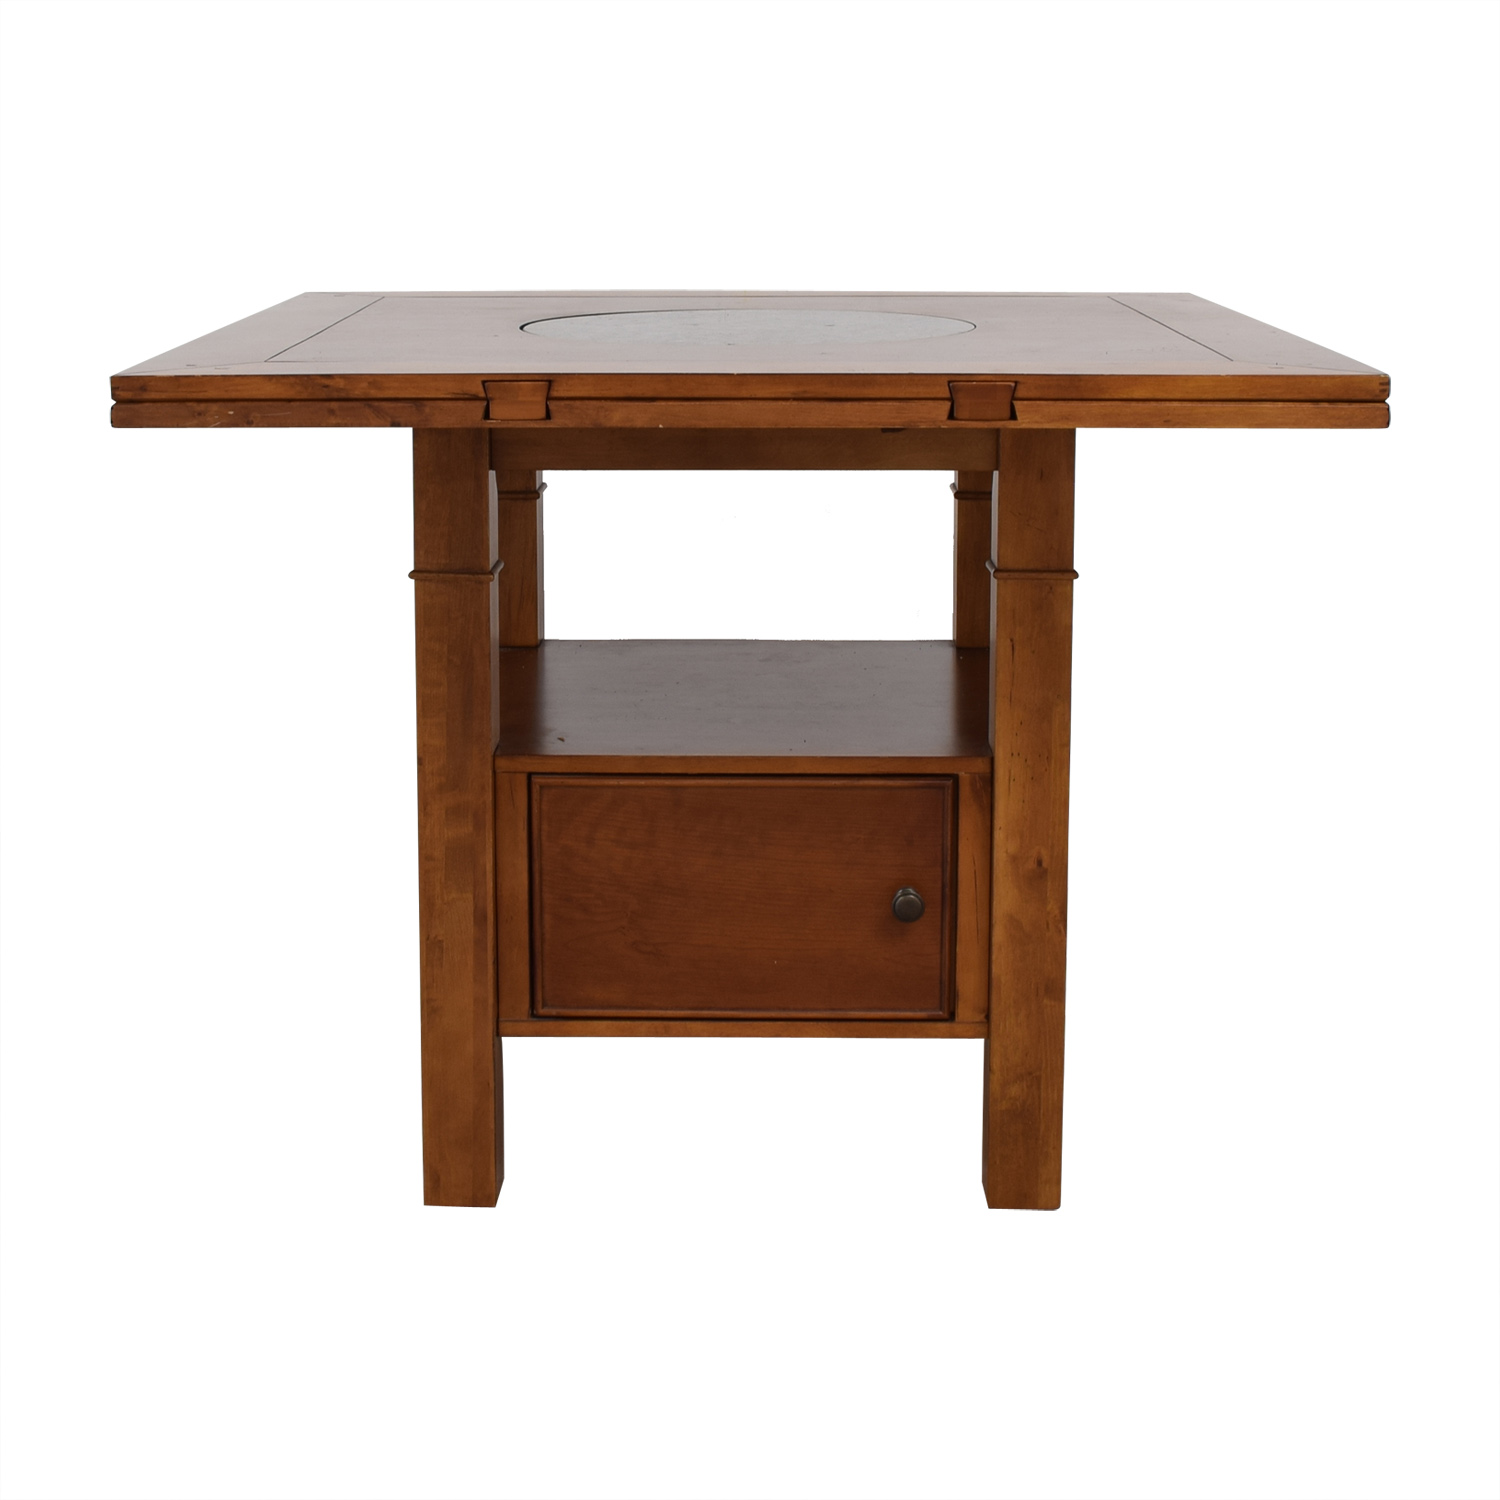 Haverty's Counter Height Wood Dining Table with Folding Leaves / Tables